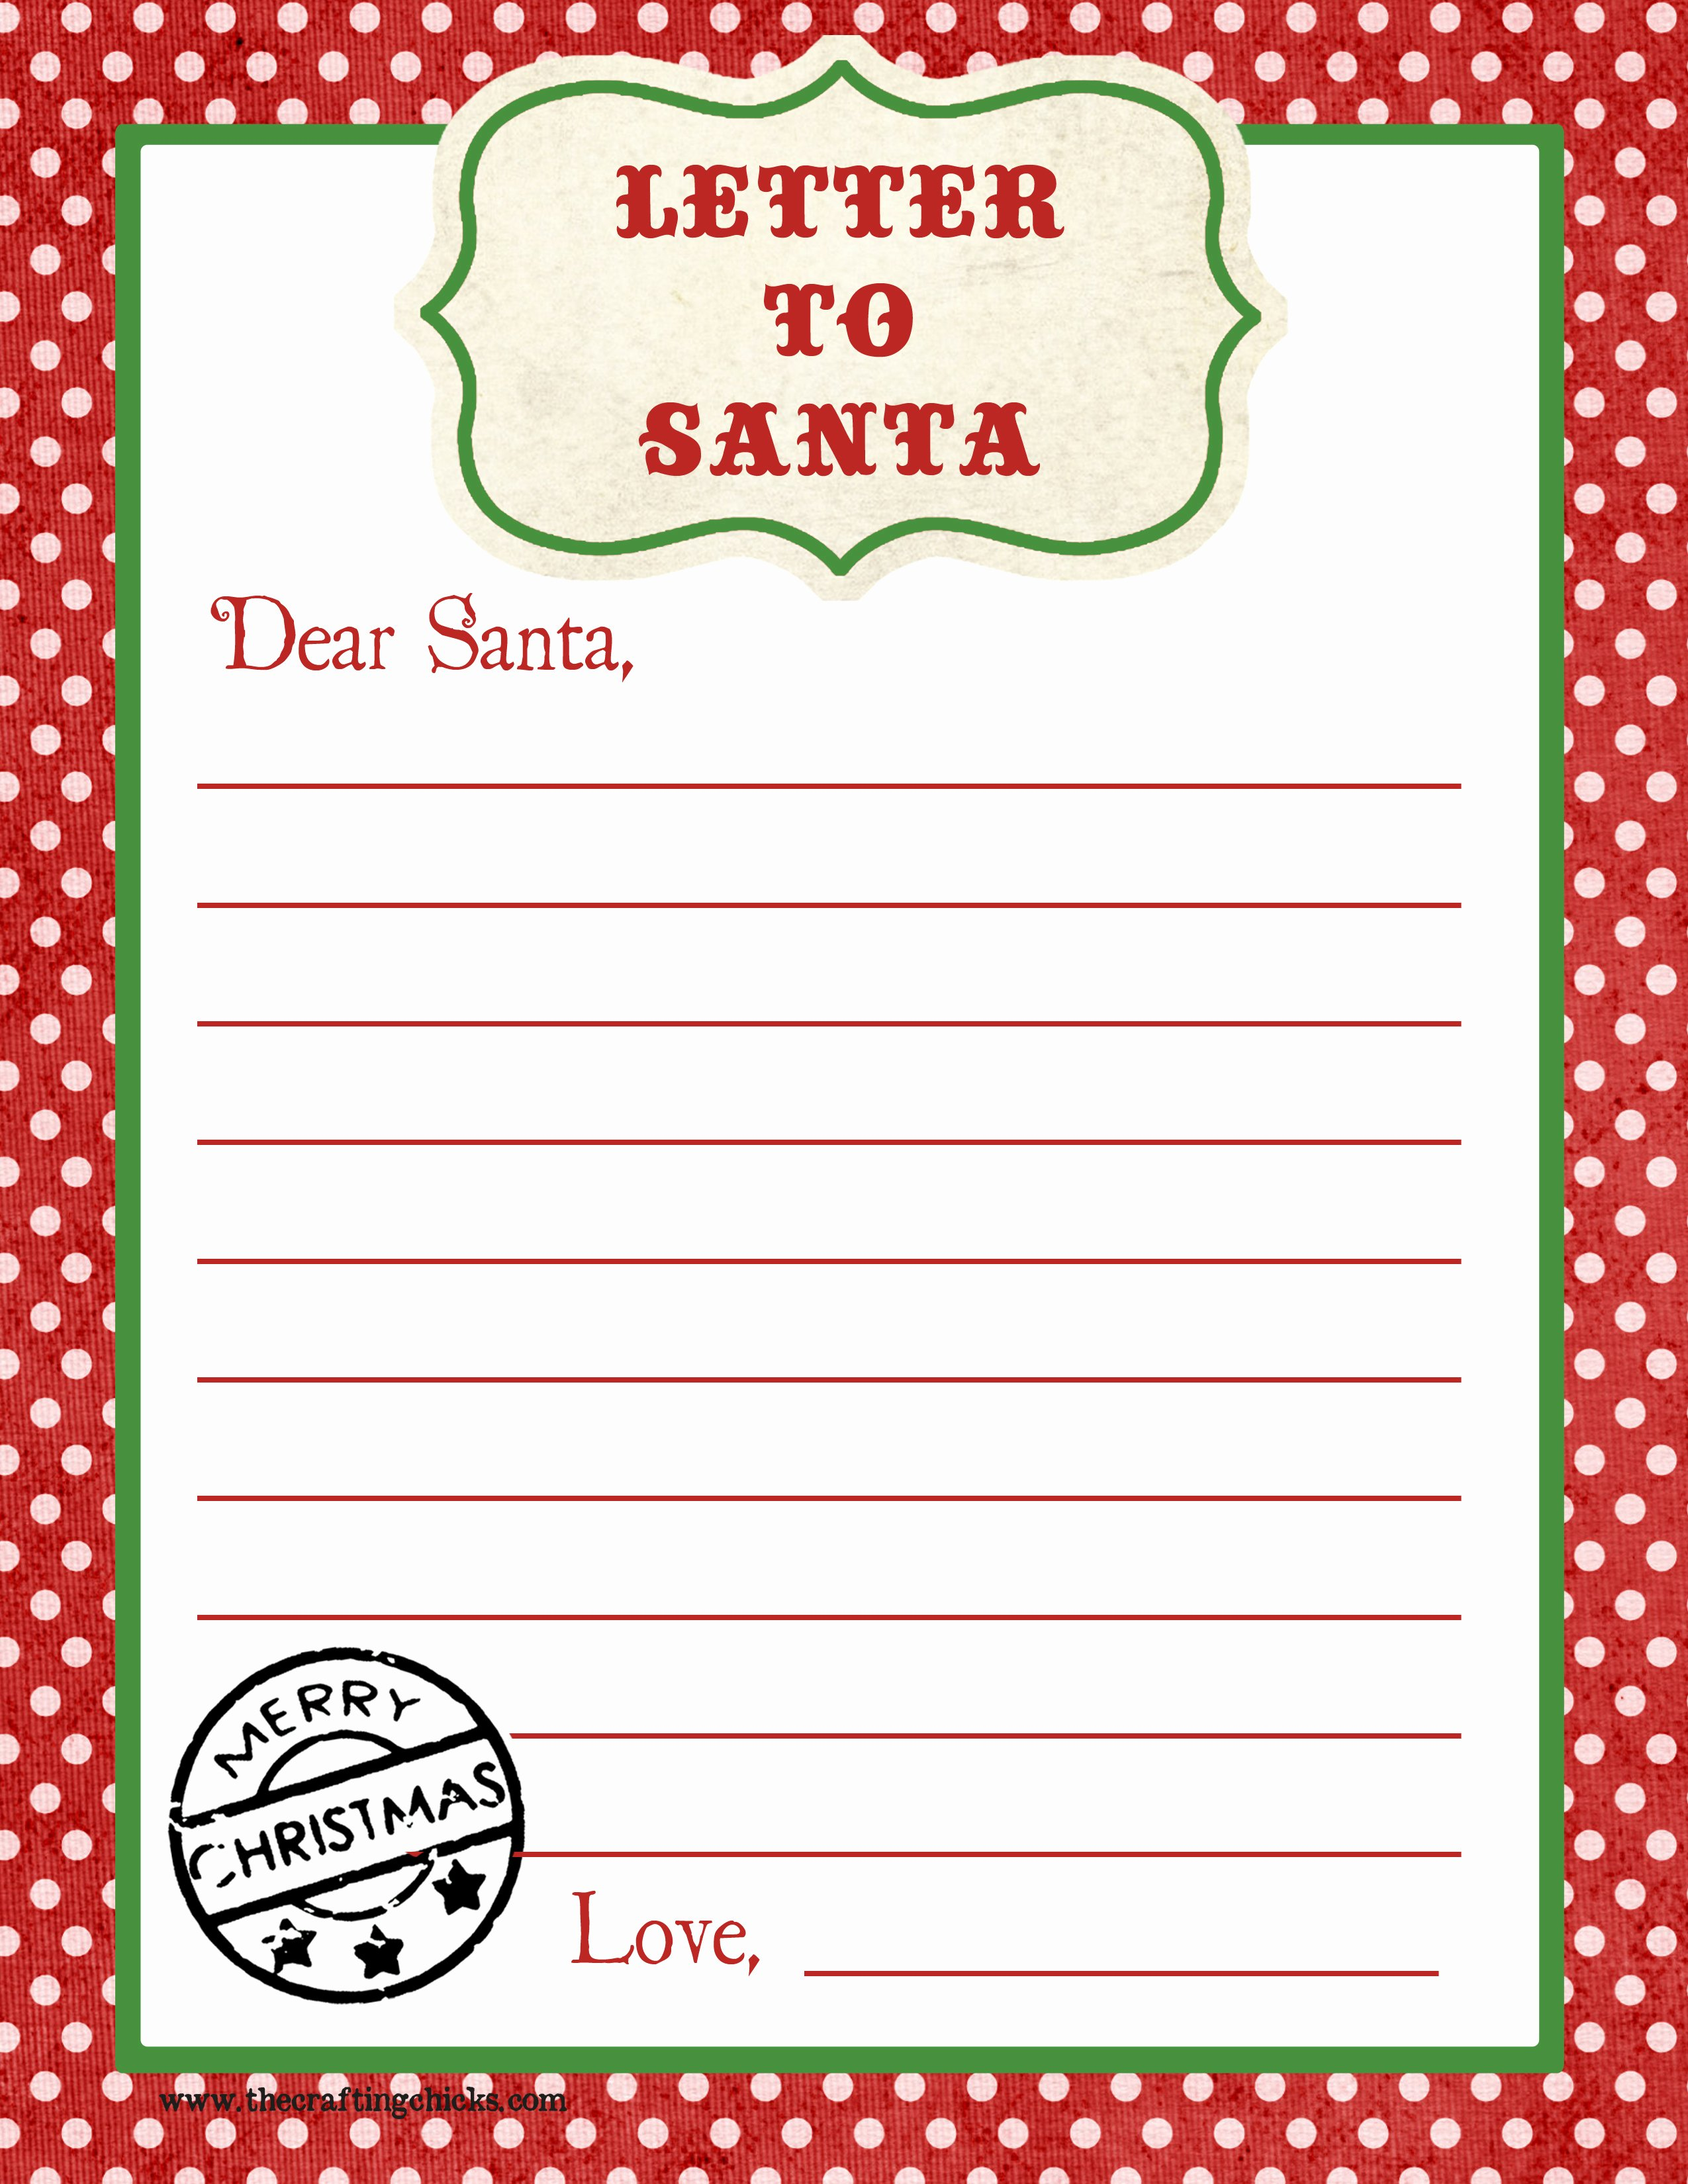 Free Holiday Letter Templates Unique Letter to Santa Free Printable Download